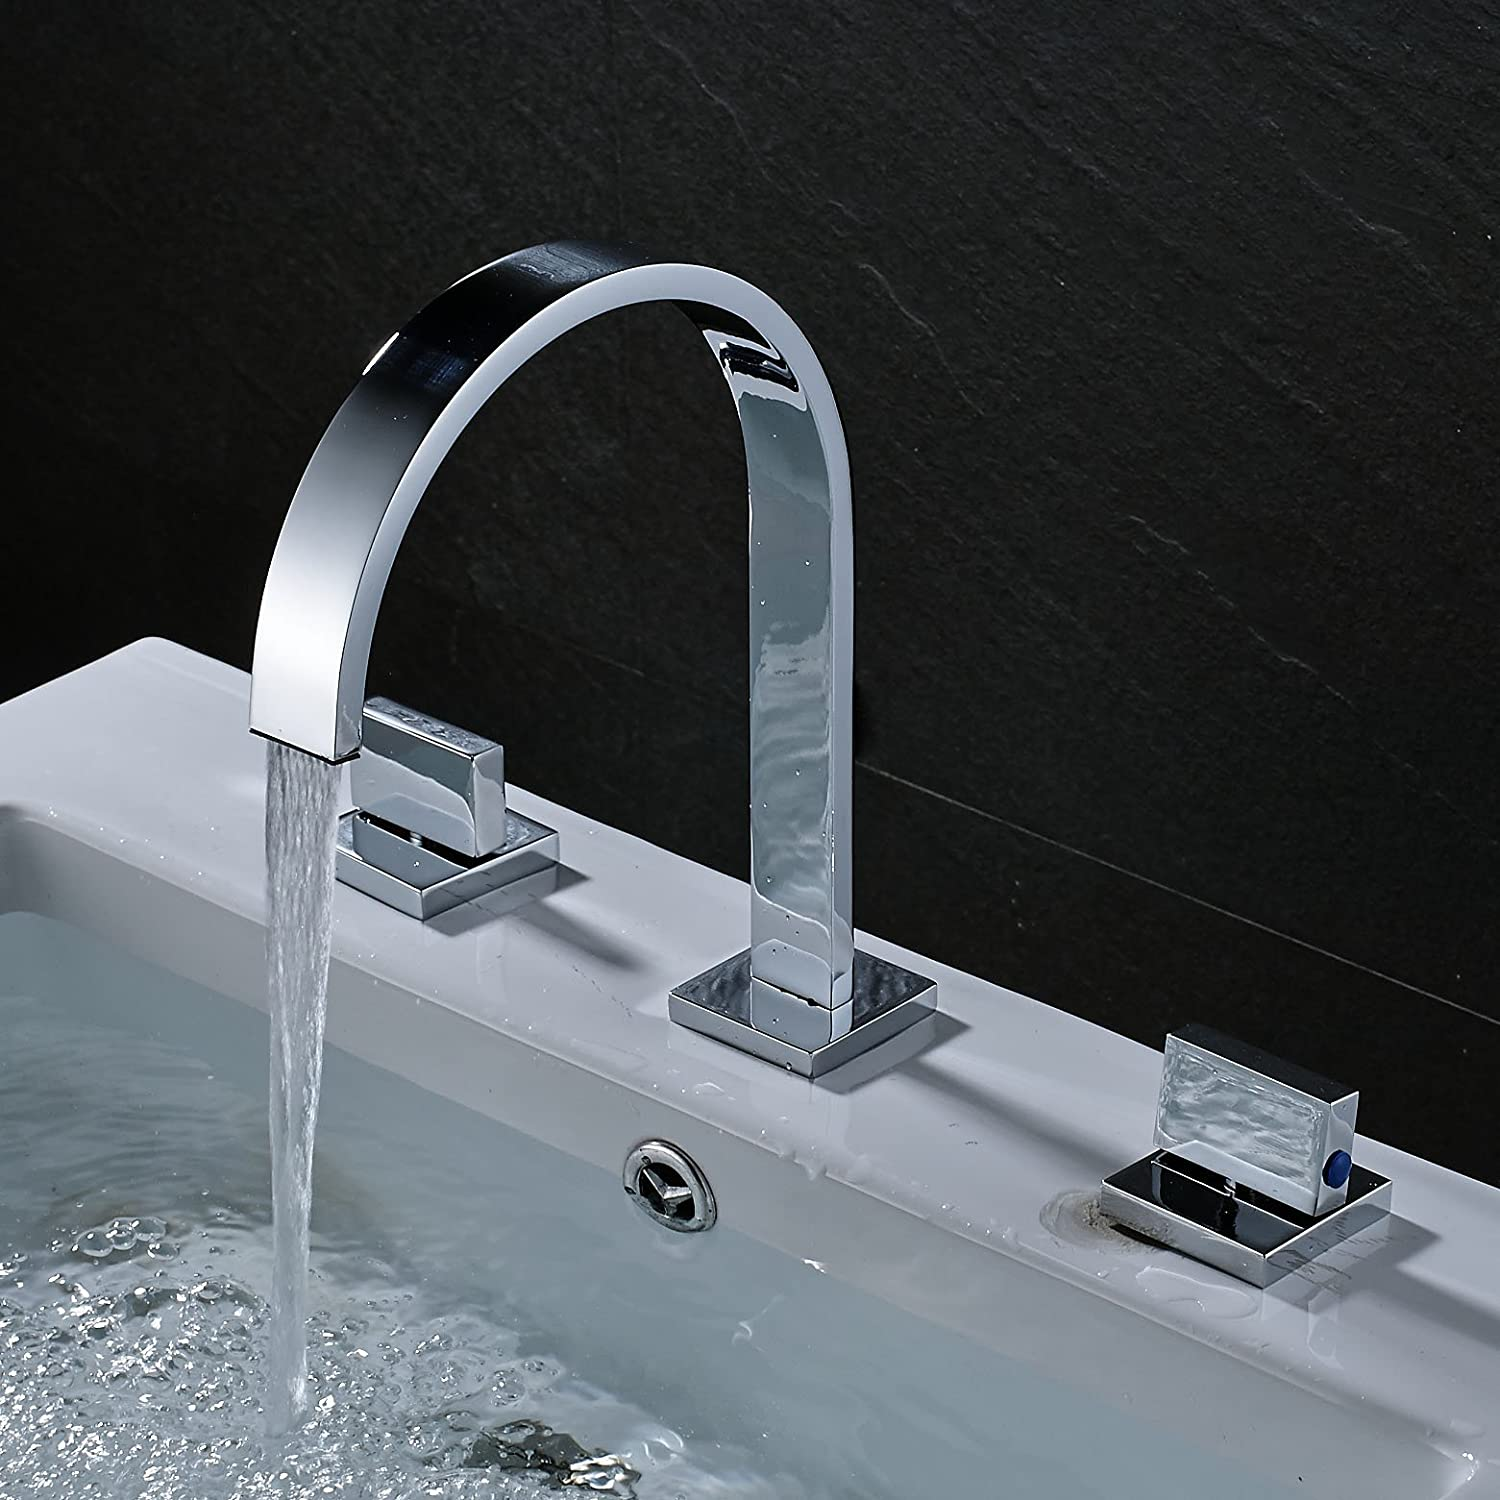 Rozin Two Handles Bath Mixer Taps Widespread Waterfall Bathroom Sink ...